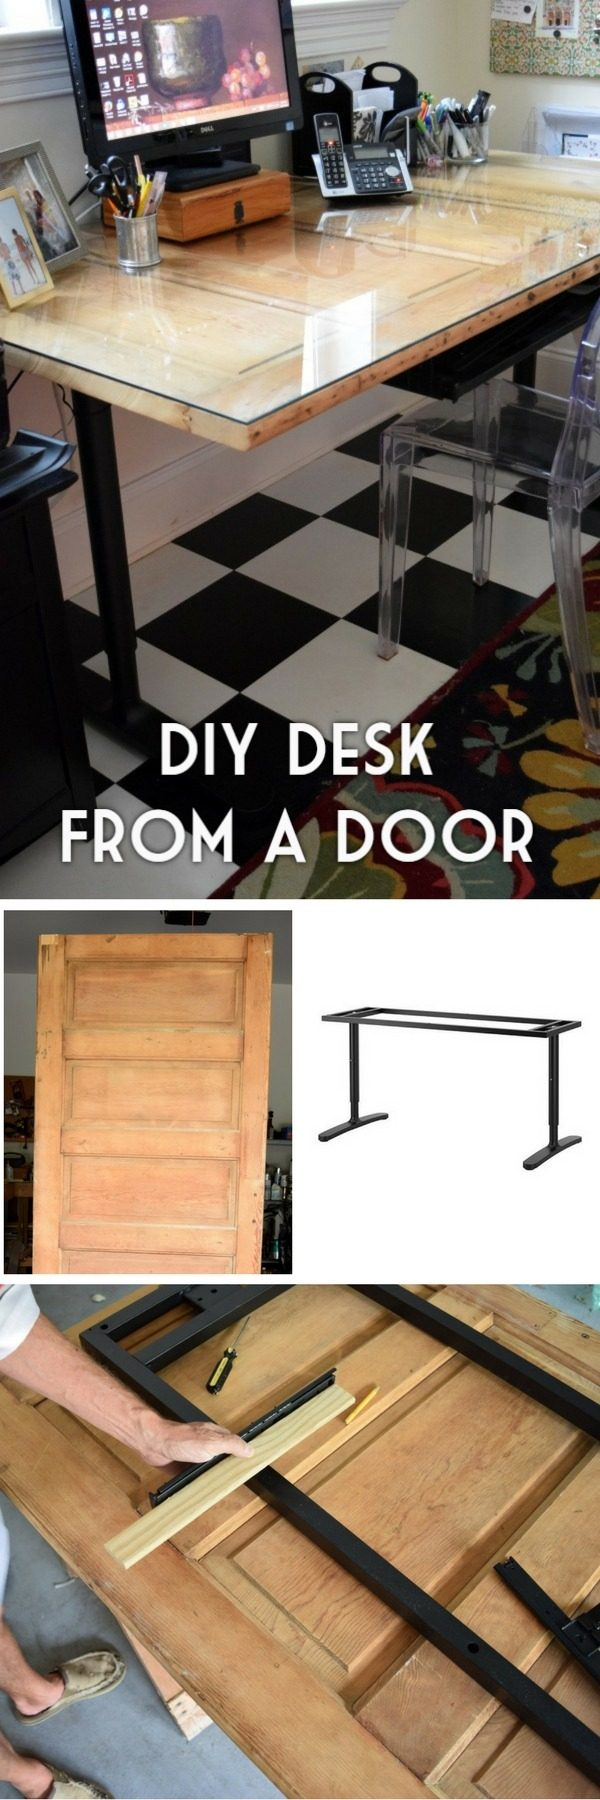 Check out the tutorial how to build a DIY desk from an old door